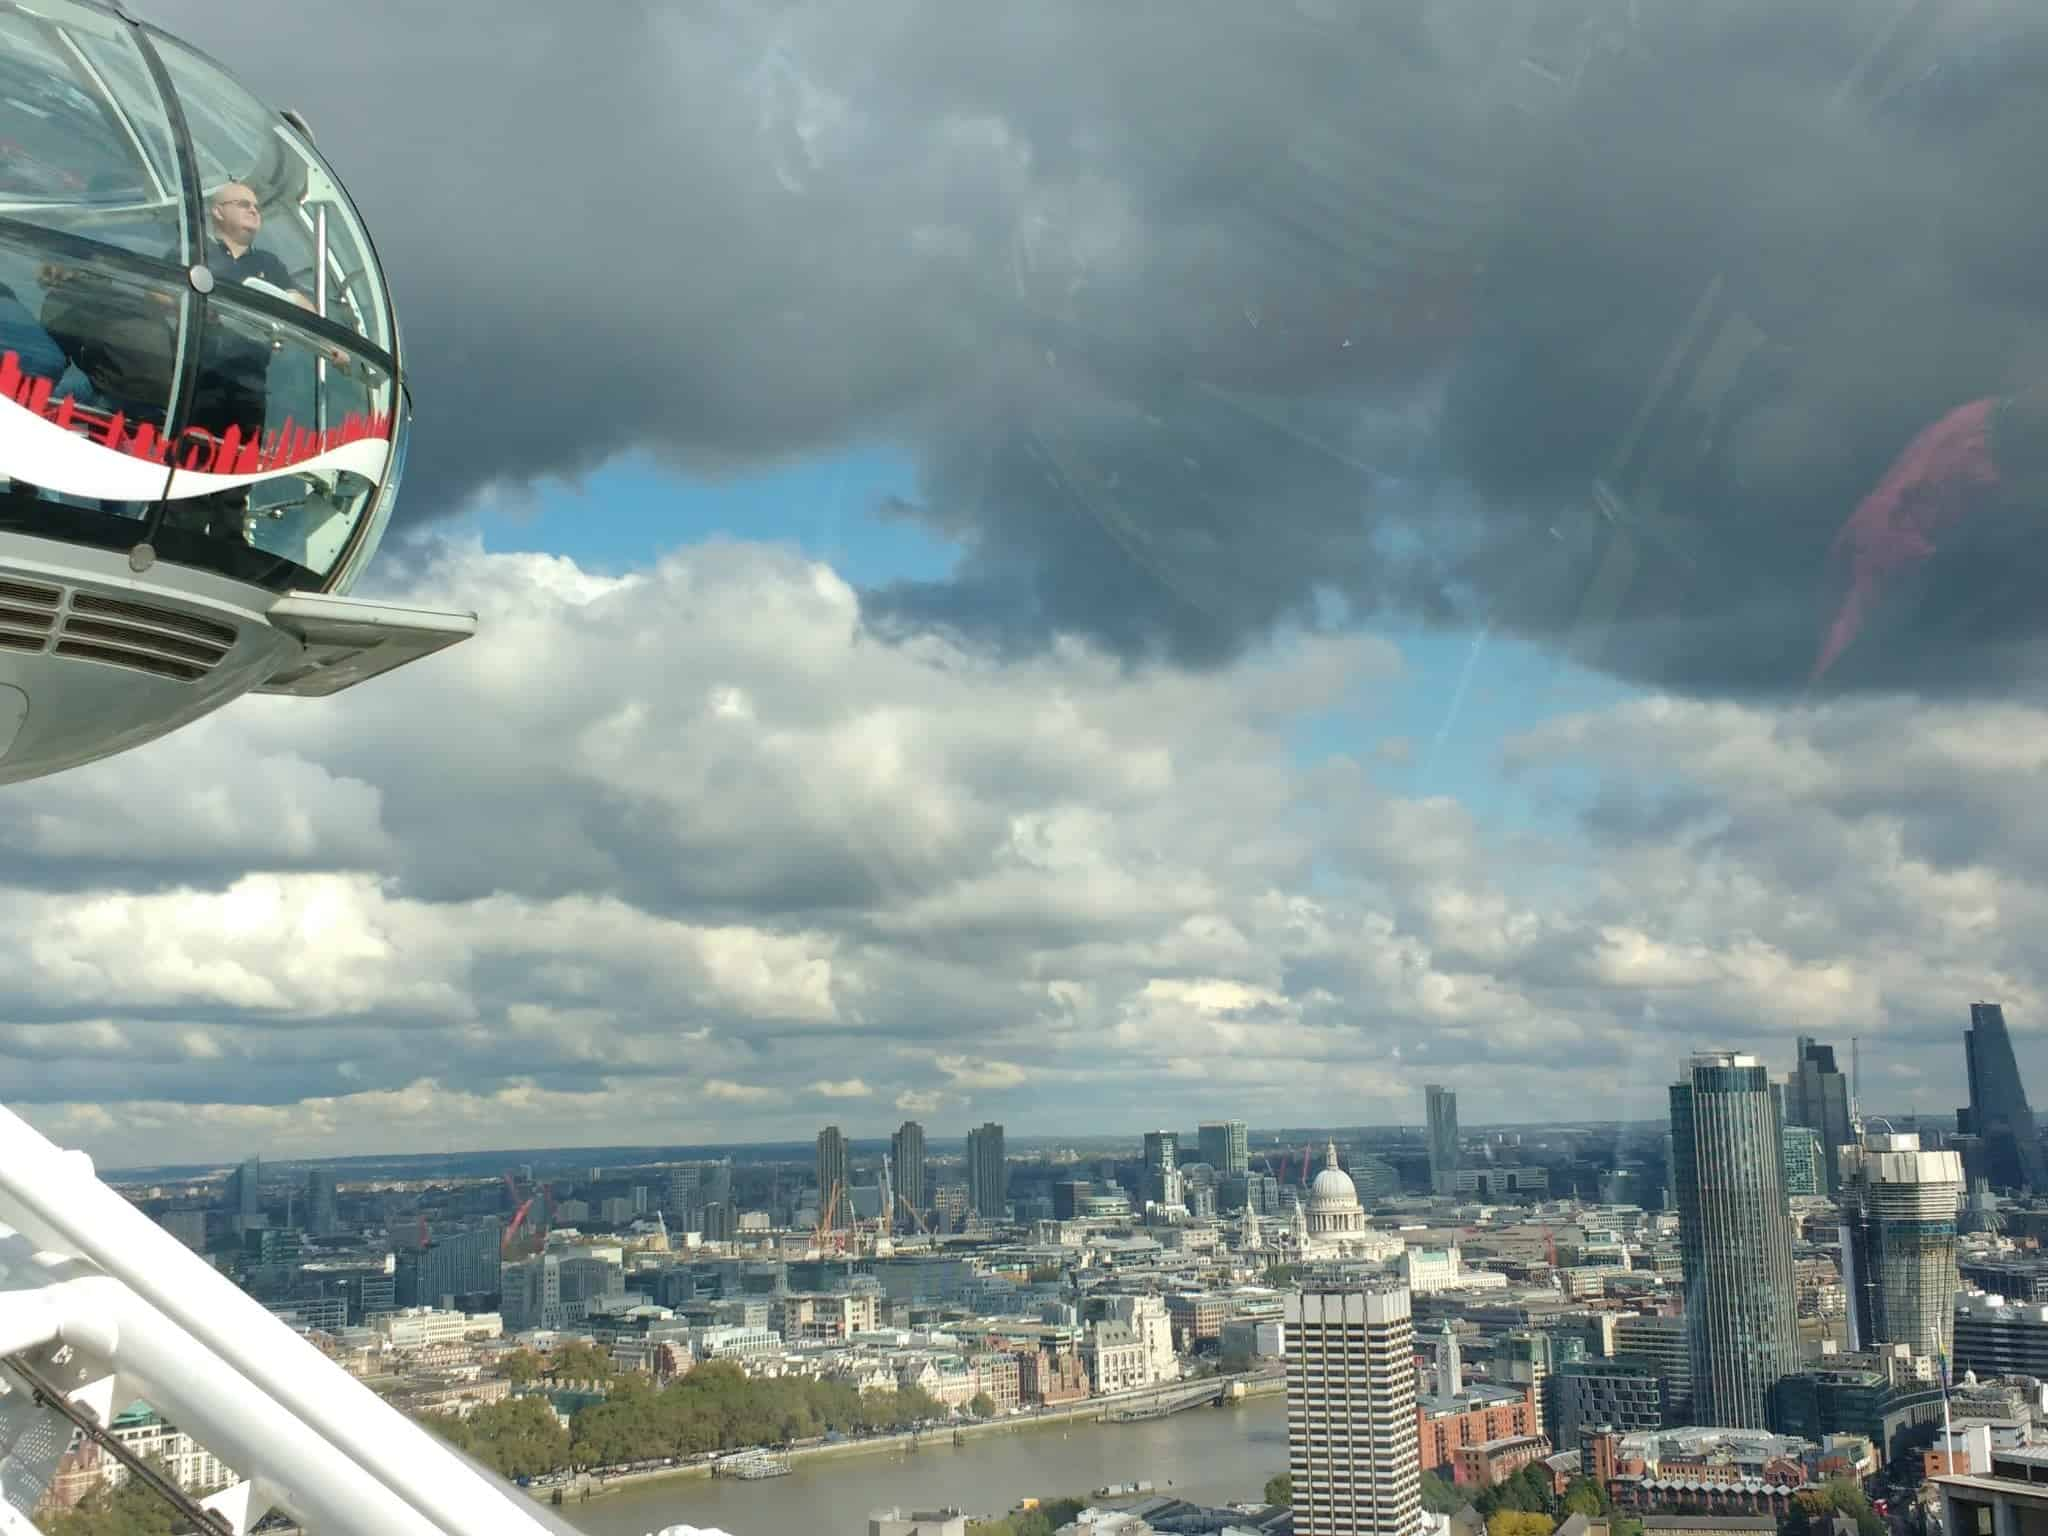 view of a capsule of the London Eye and the City beyond